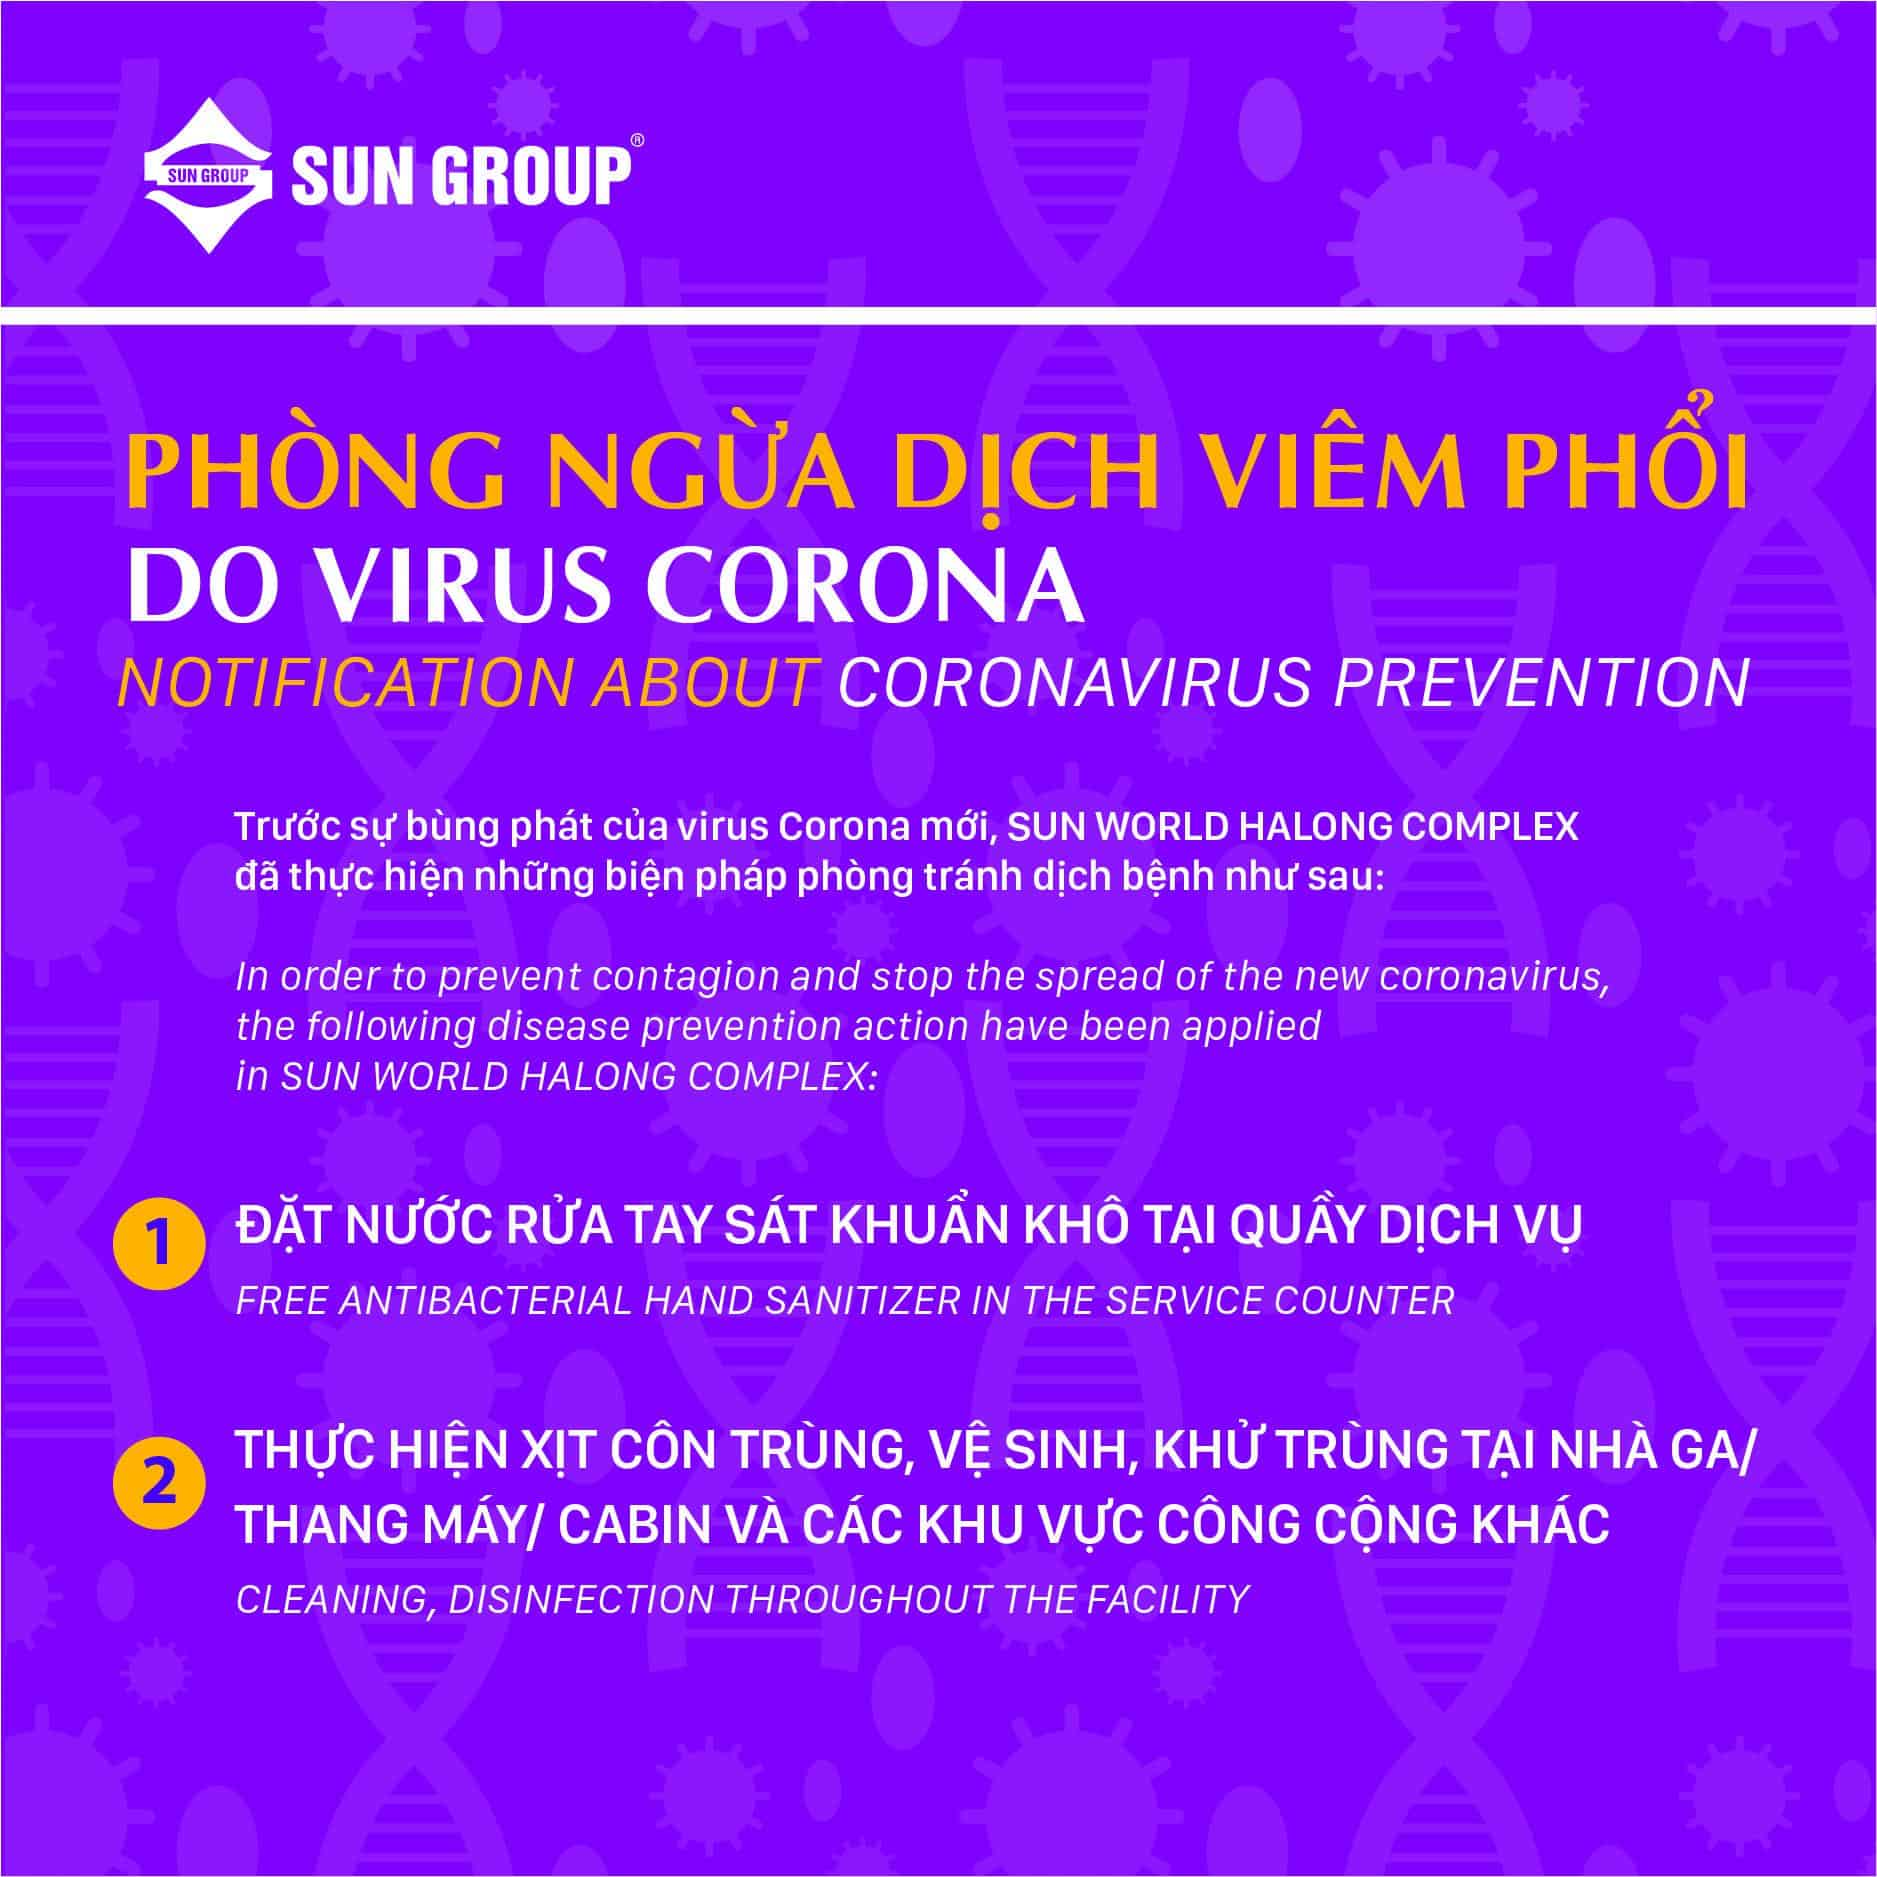 NOTIFICATION: PREVENTING CORONA VIRUS PNEUMONIA